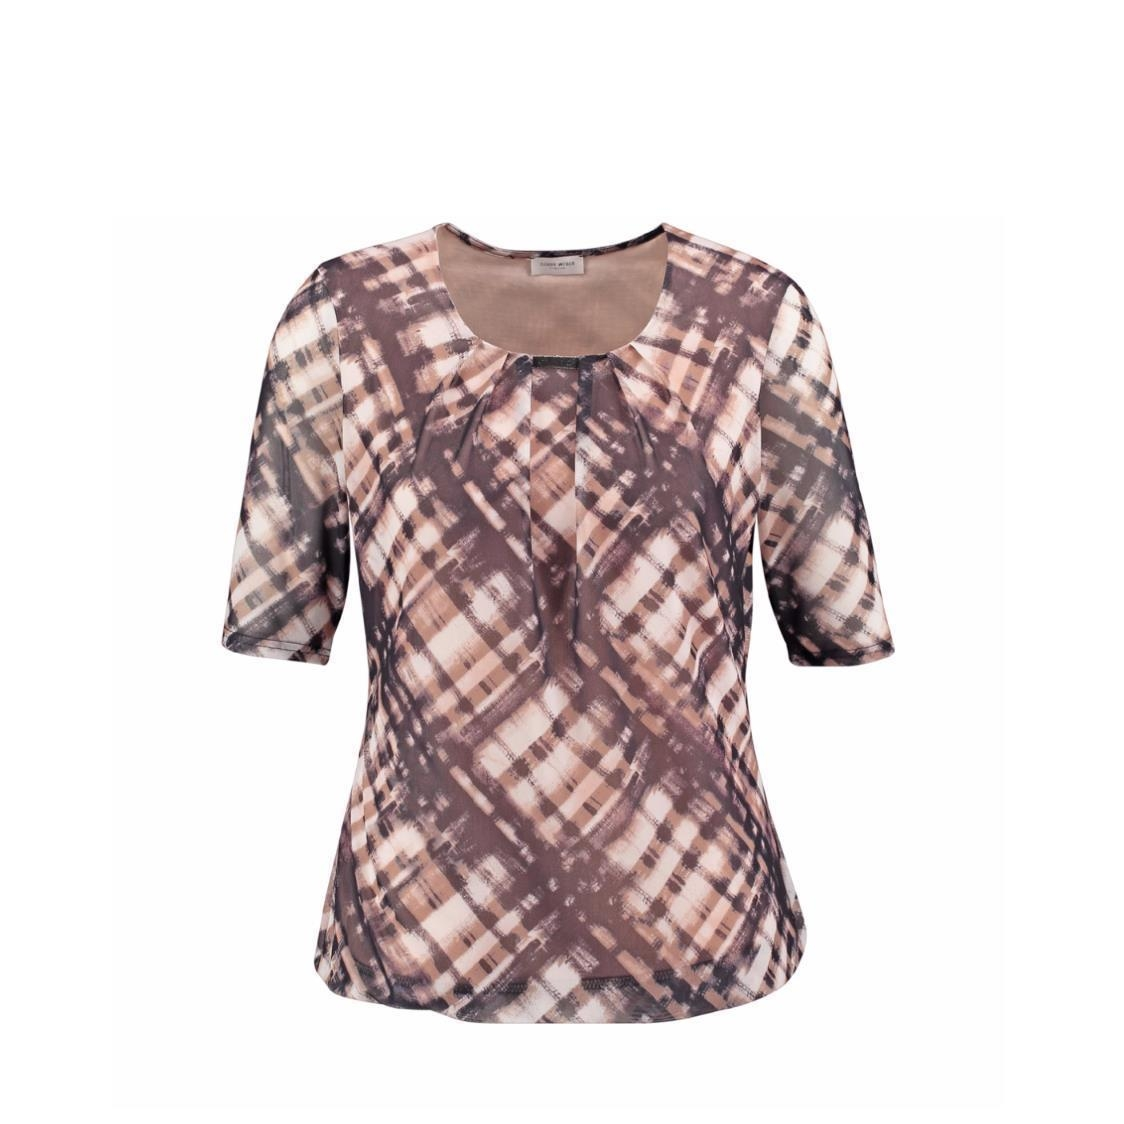 Top with Pleat Detail